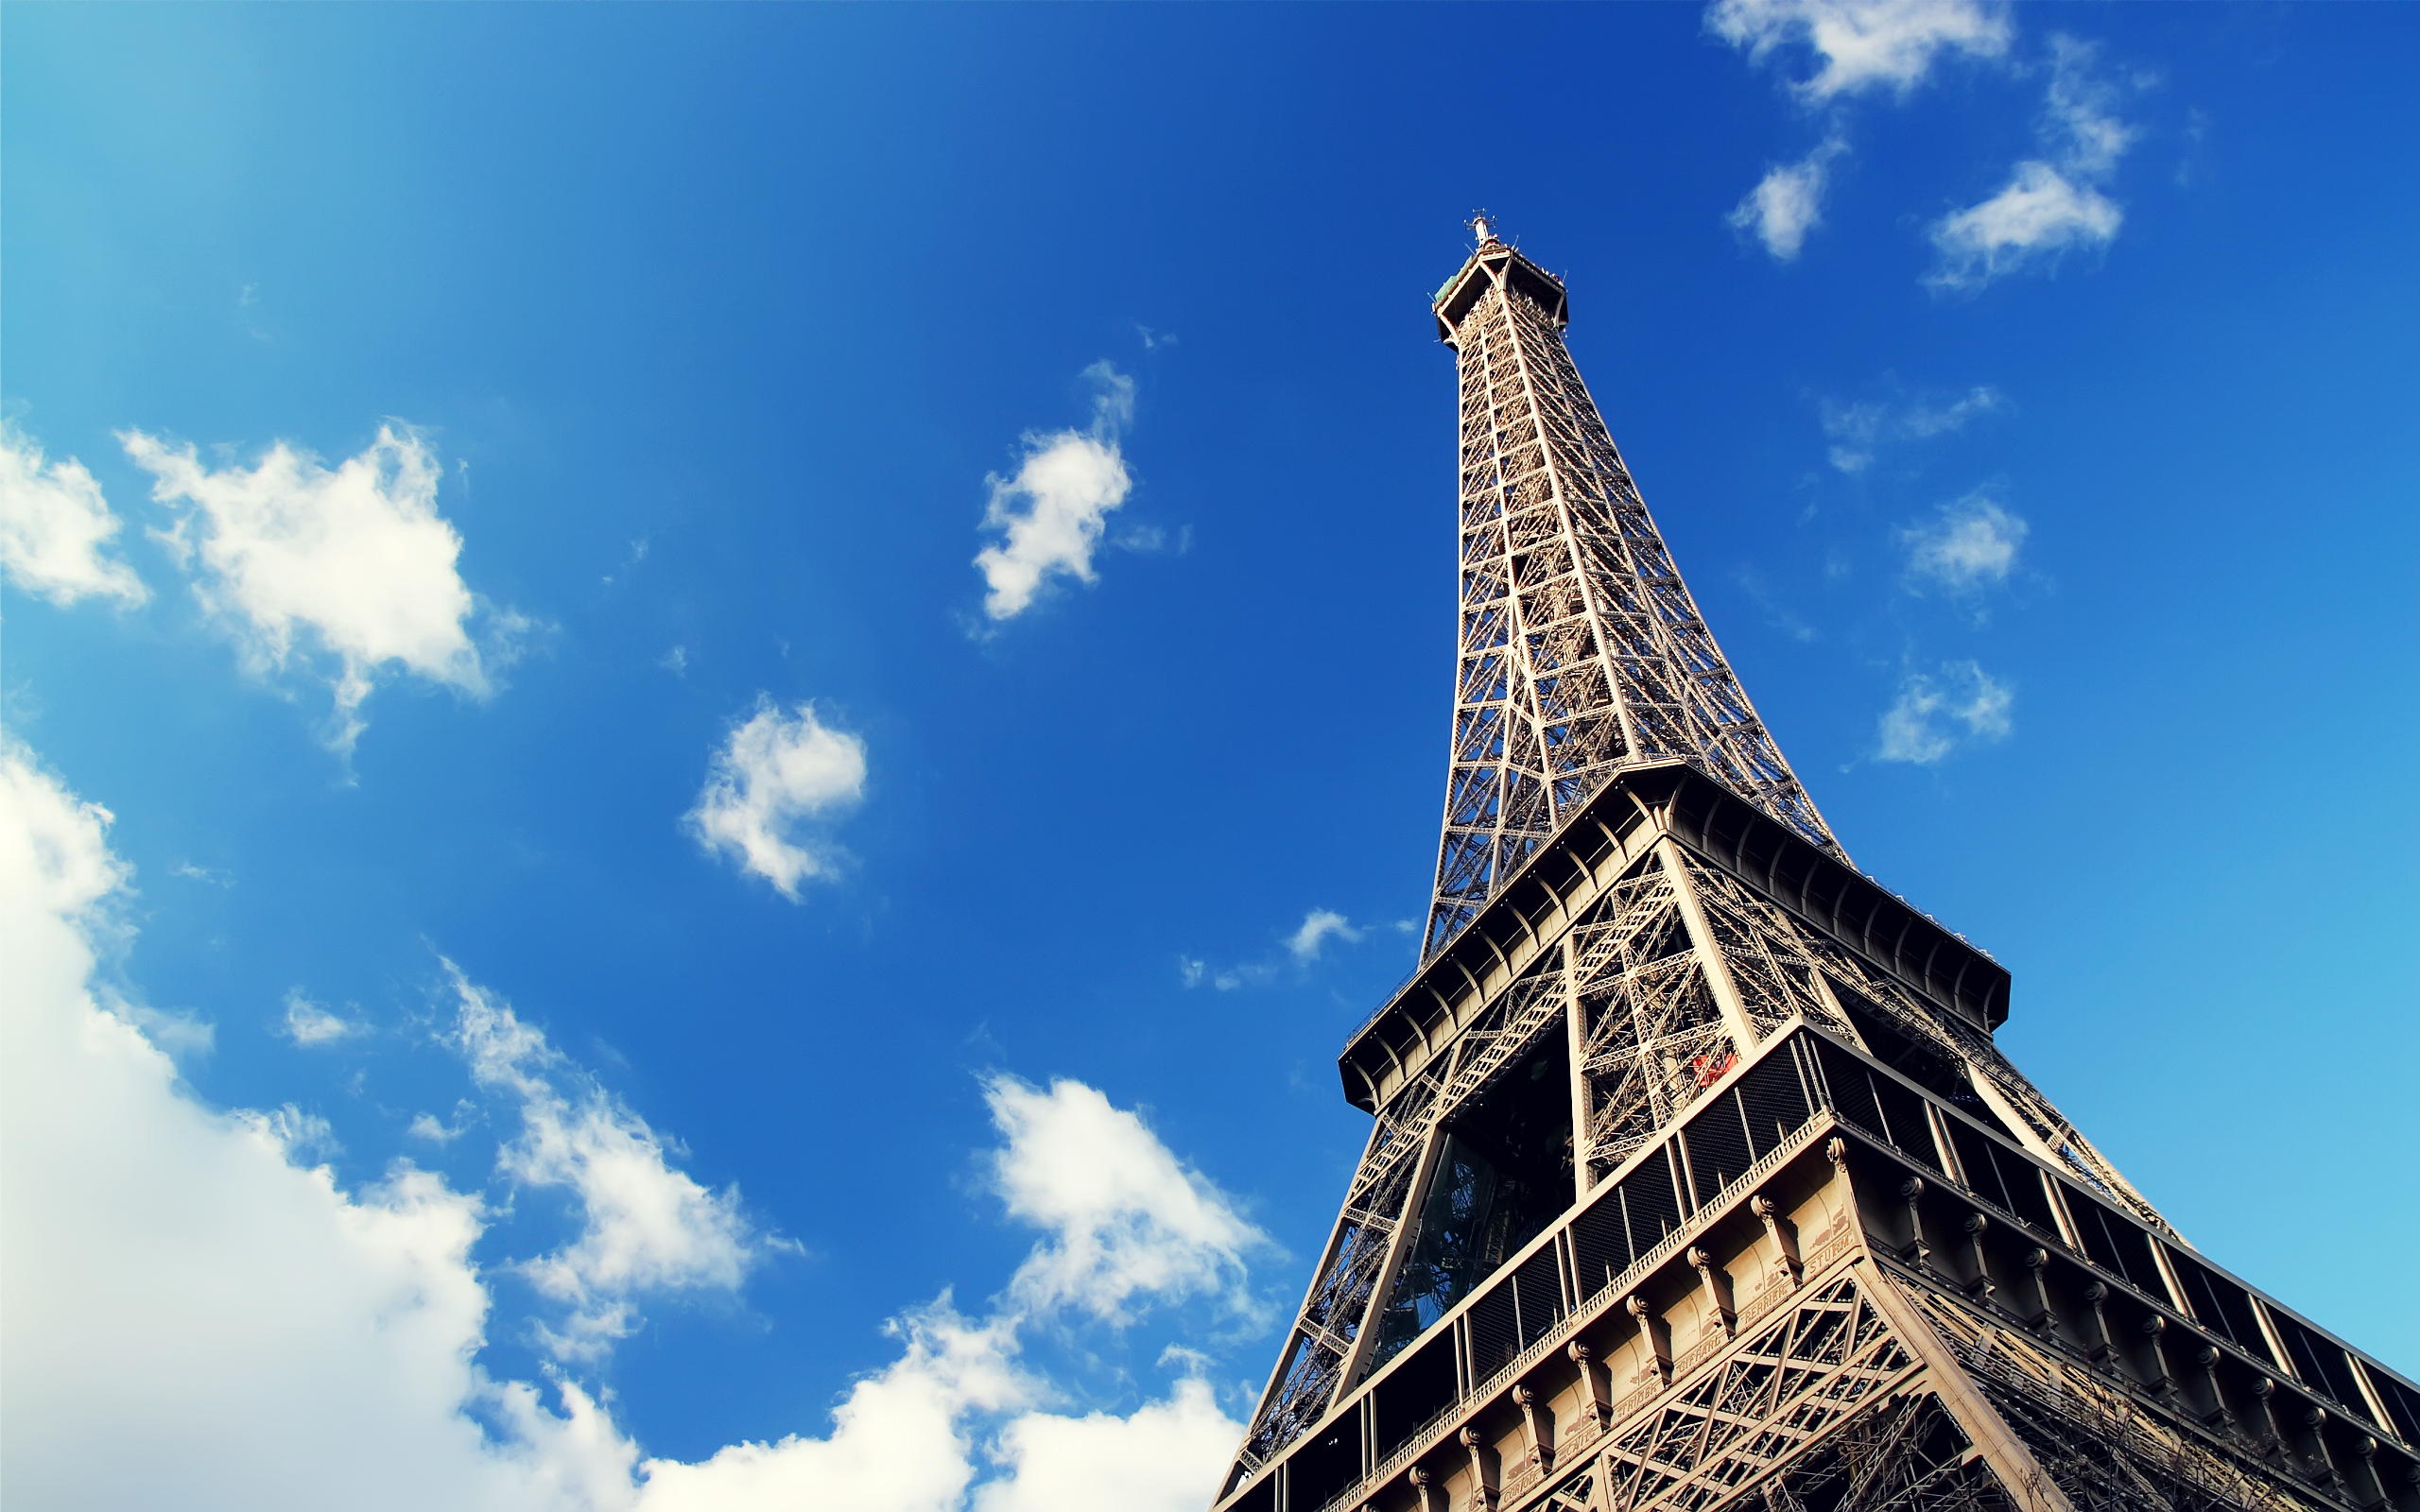 Cute Paris Wallpaper For Ipad Wallpaper Of Great Building Eiffel Tower In The Sky